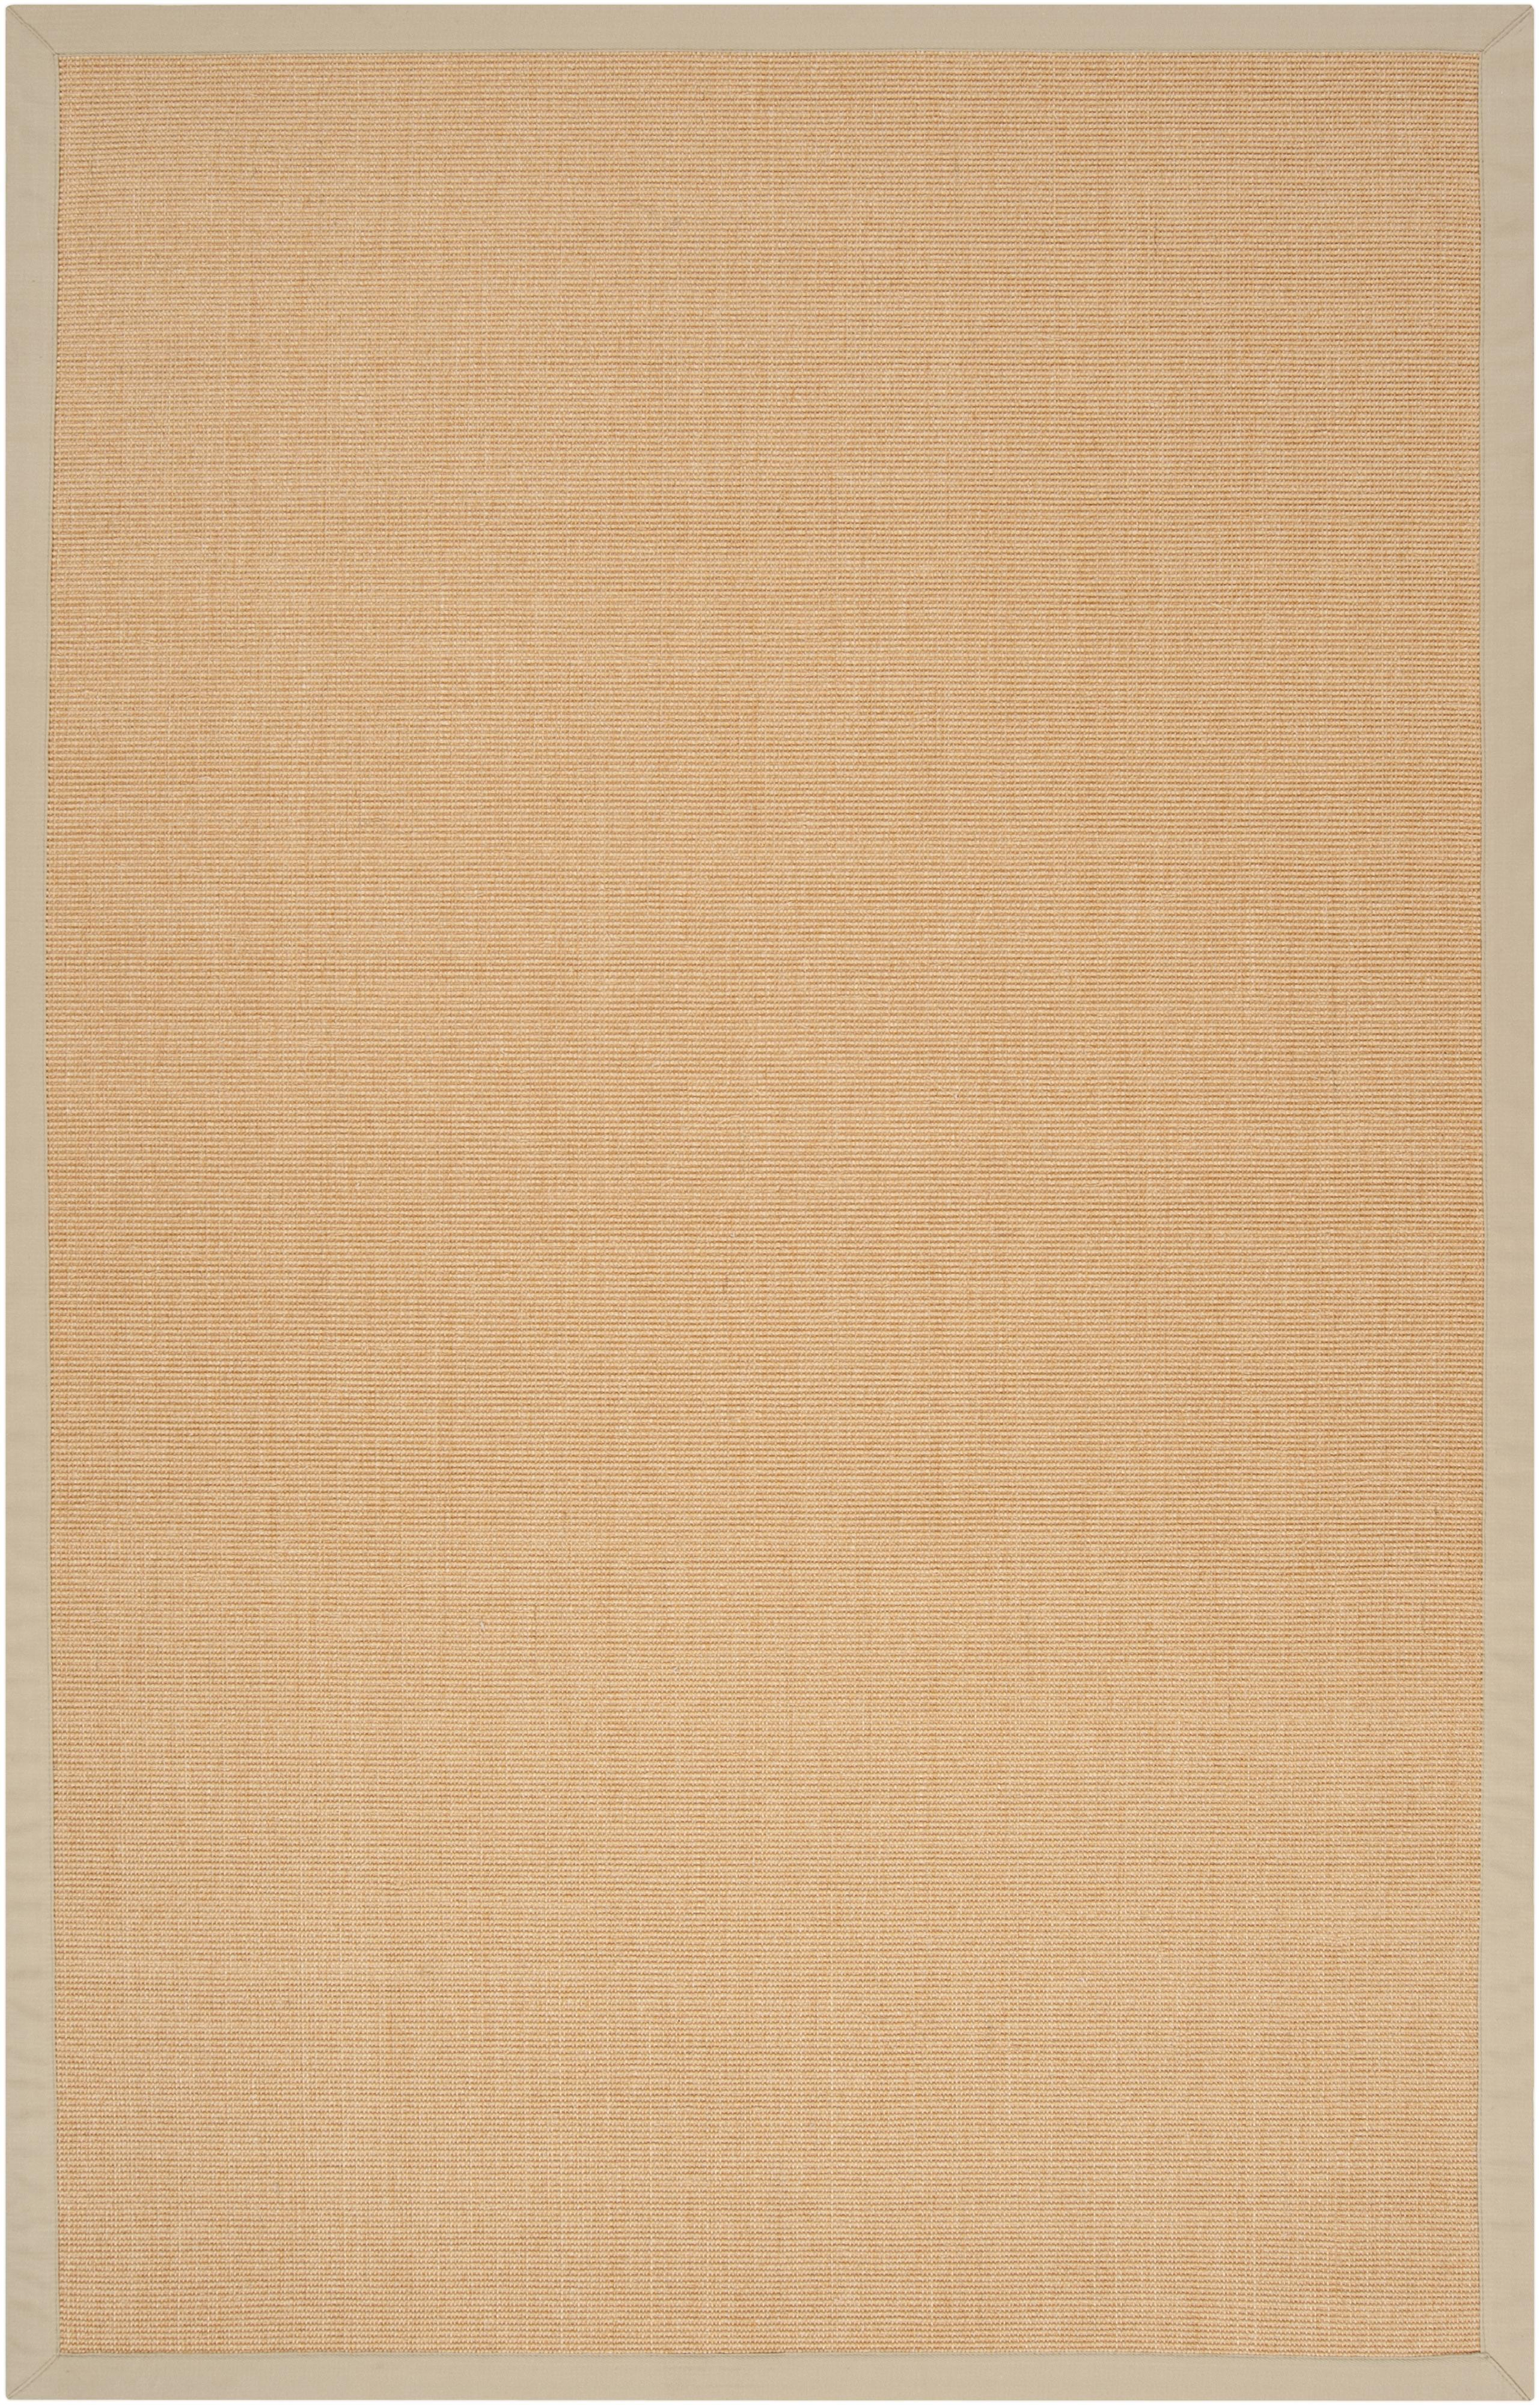 Surya Rugs Clinton 4' x 6' - Item Number: CLN9002-46